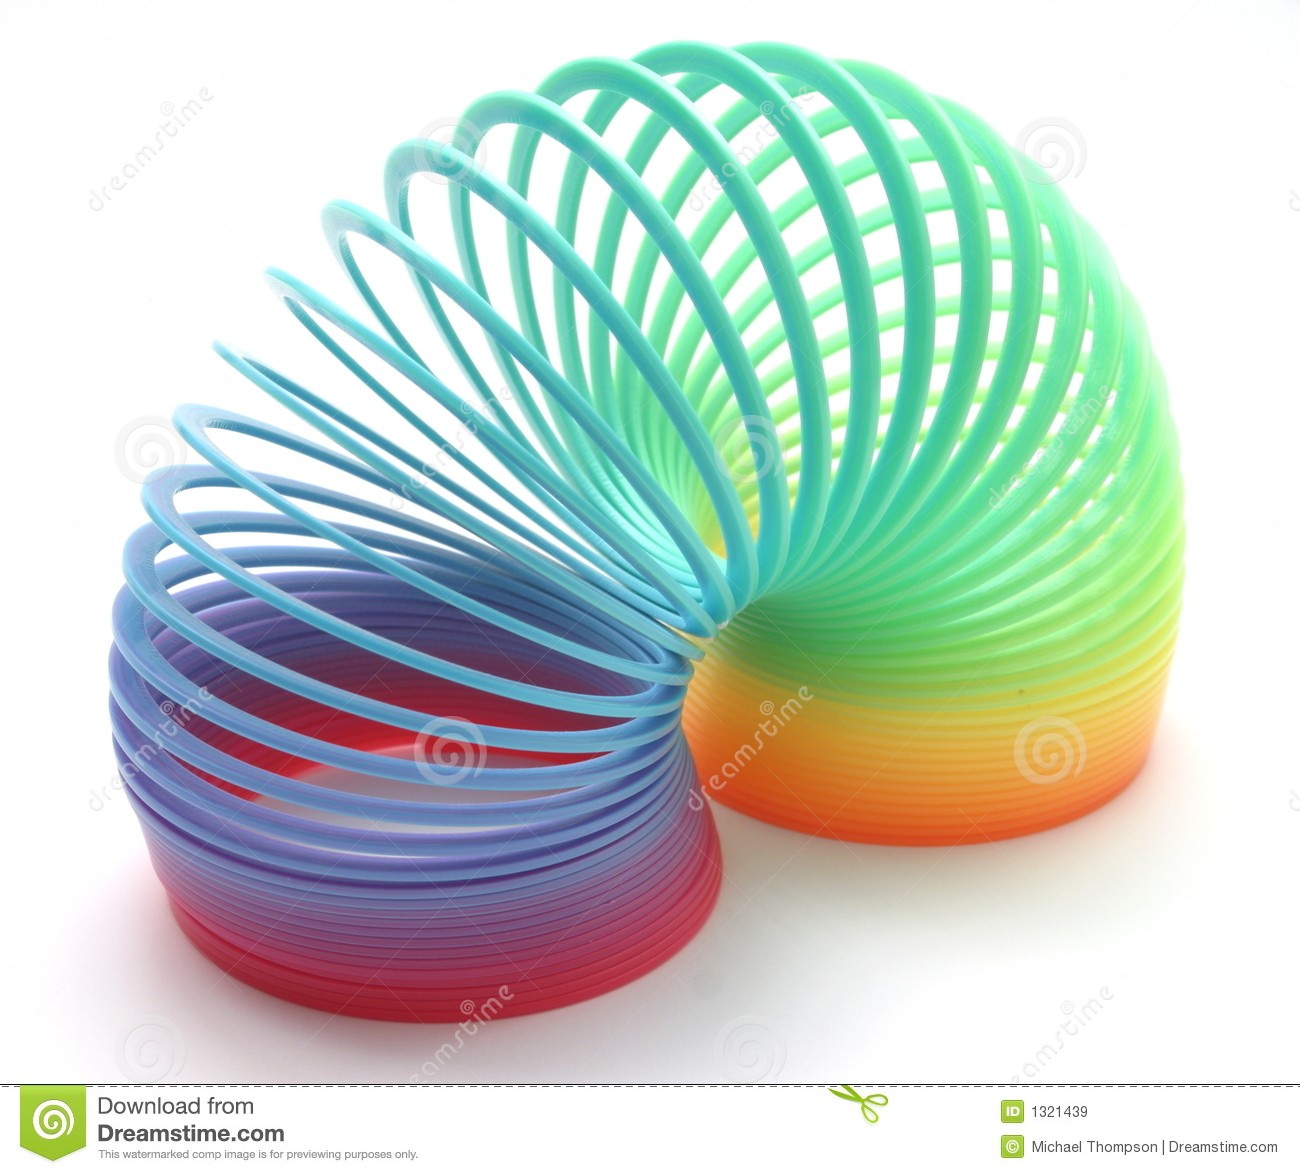 Rainbow Toy Royalty Free Stock Images - Image: 1321439